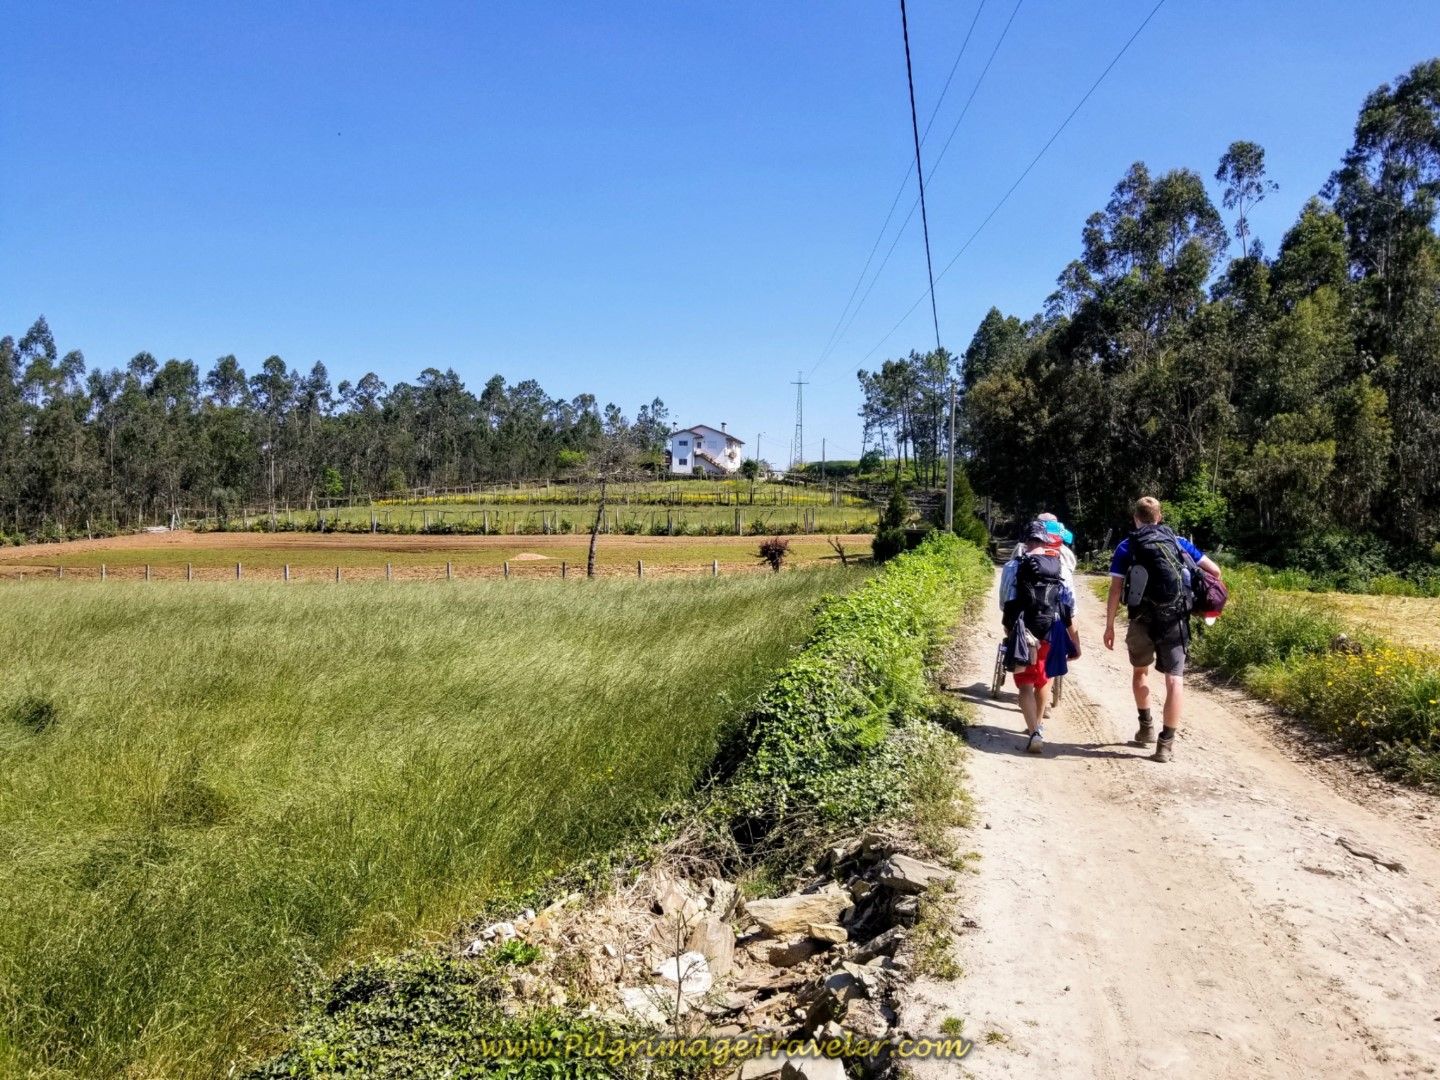 Onward on the Rua Caminho de Santiago on day sixteen on the Central Route of the Portuguese Way